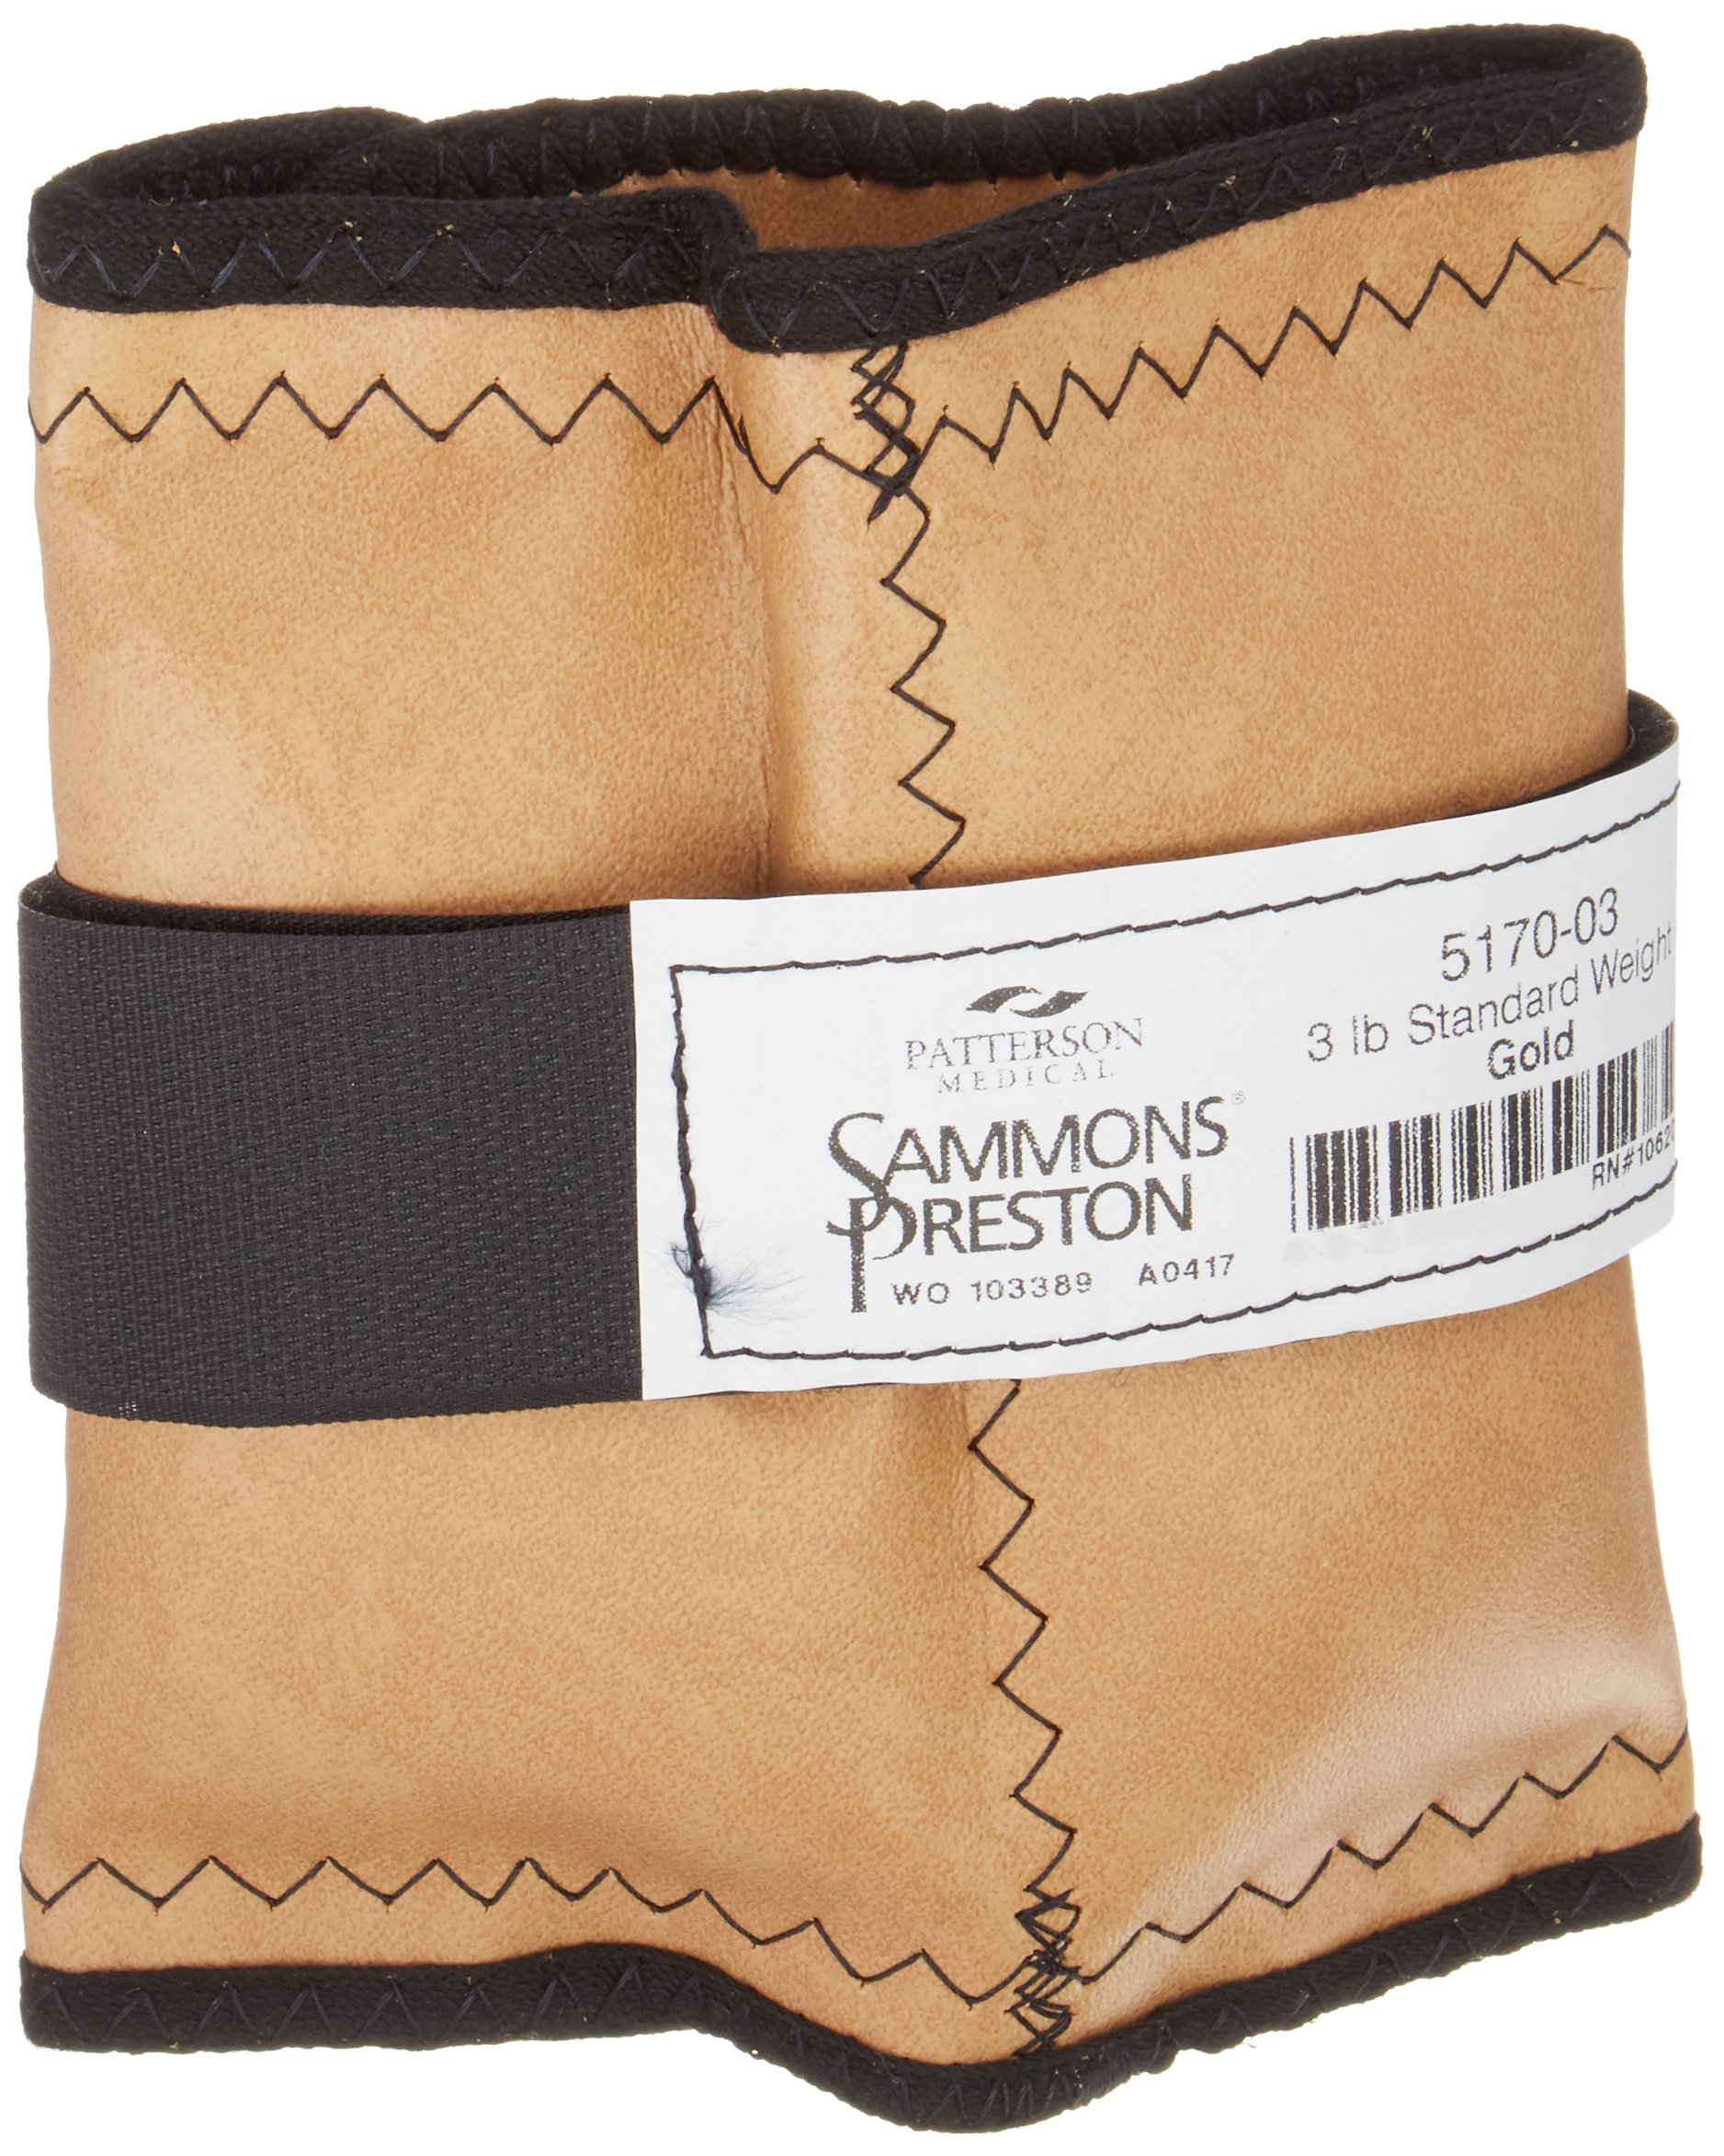 Sammons Preston Cuff Weight, 3 lb, Gold, Strap & D-Ring Closure, Grommet for Easy Hanging, Steel Ankle & Wrist Weights are Lead Free, Exercise Tool for Strength Building & Injury Rehab by Sammons Preston (Image #1)